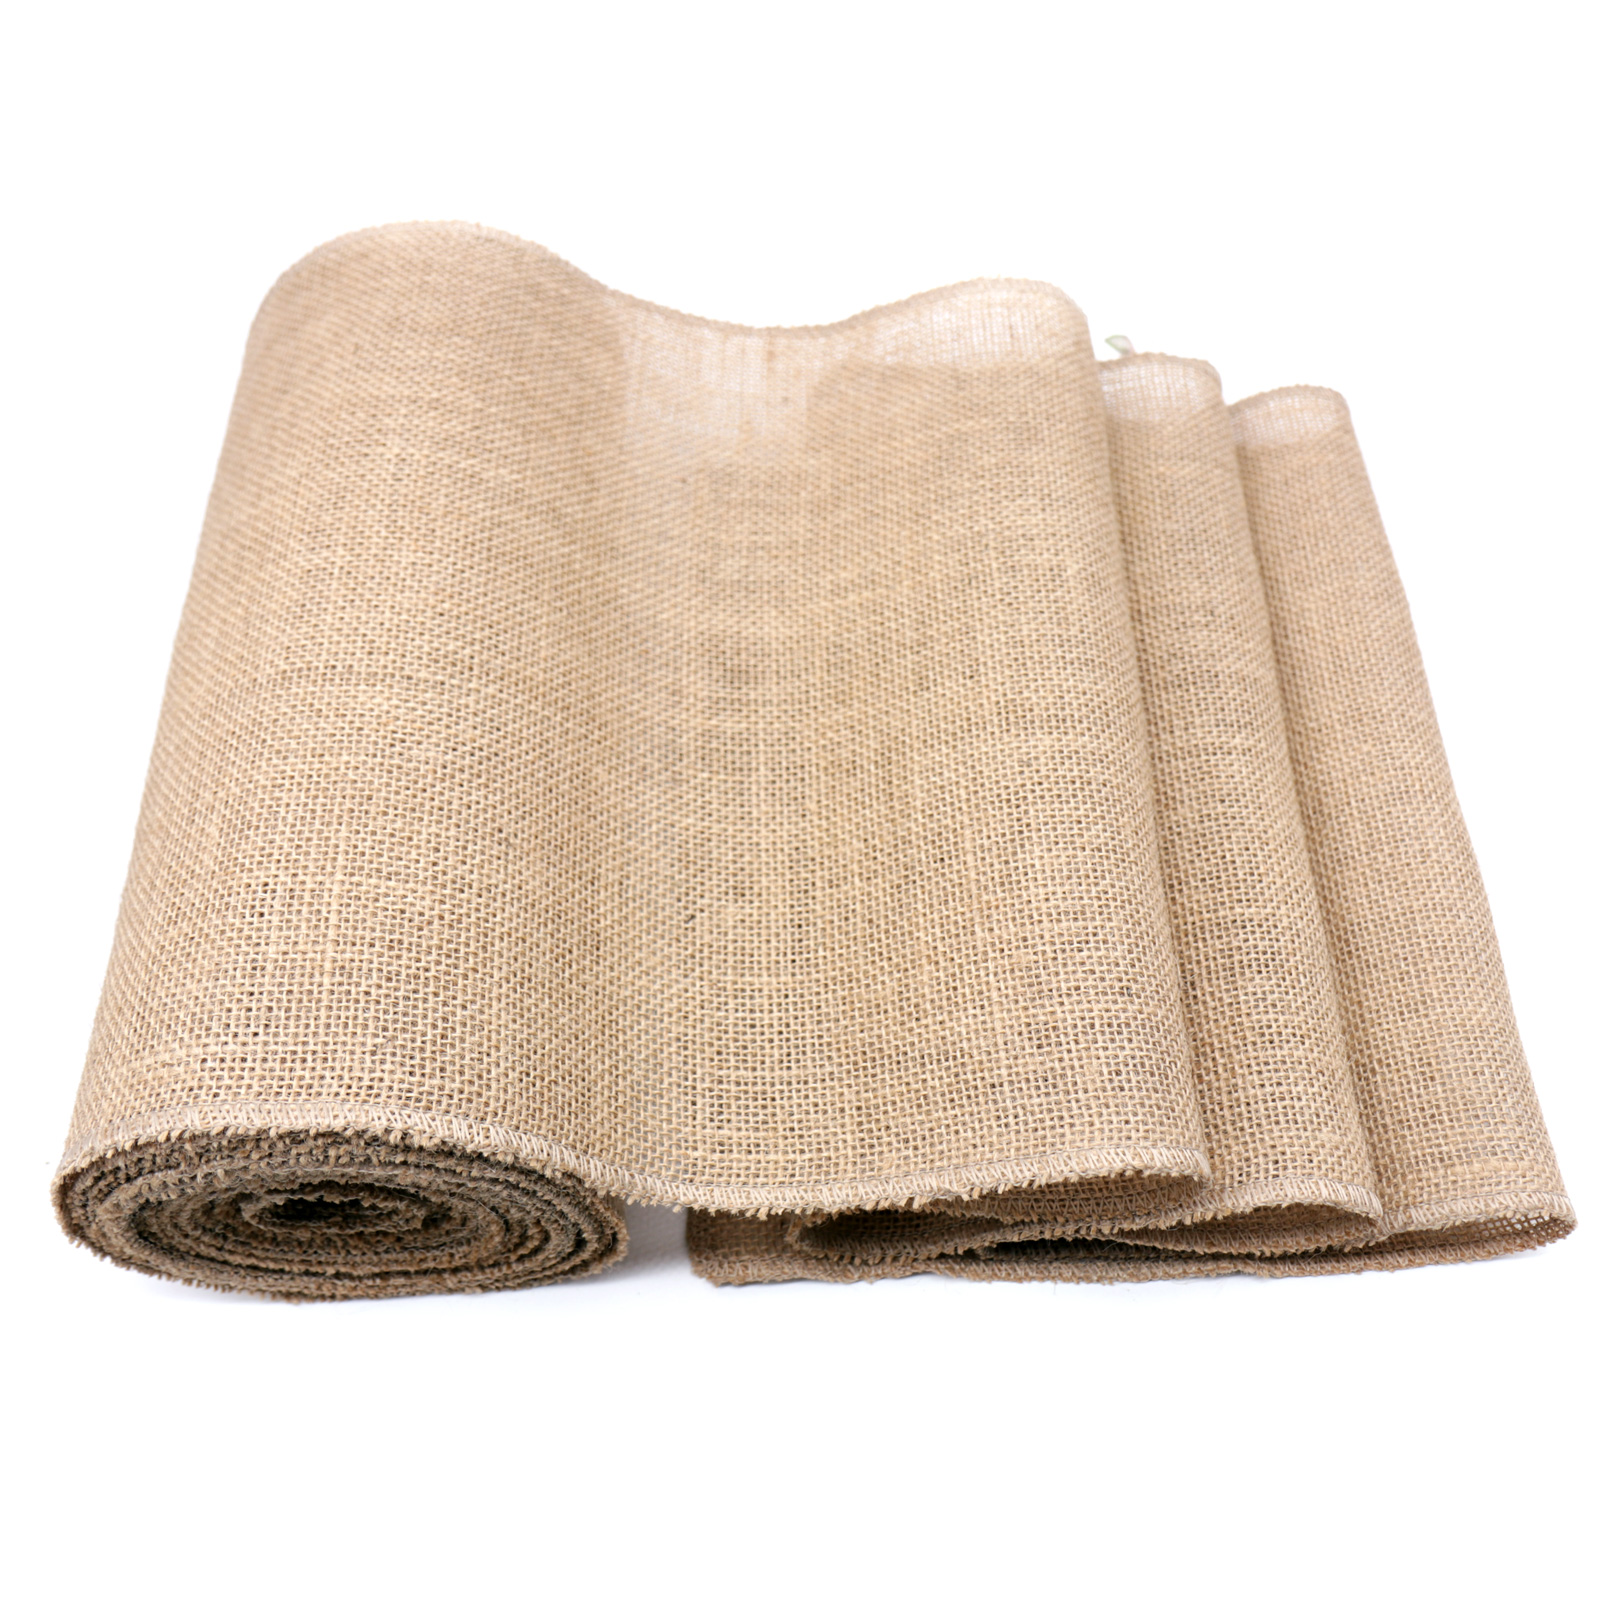 30cmx10m Natural Hessian Jute Burlap Table Runner Table Decoration For Wedding Event Home Party Background Photo Props Supply